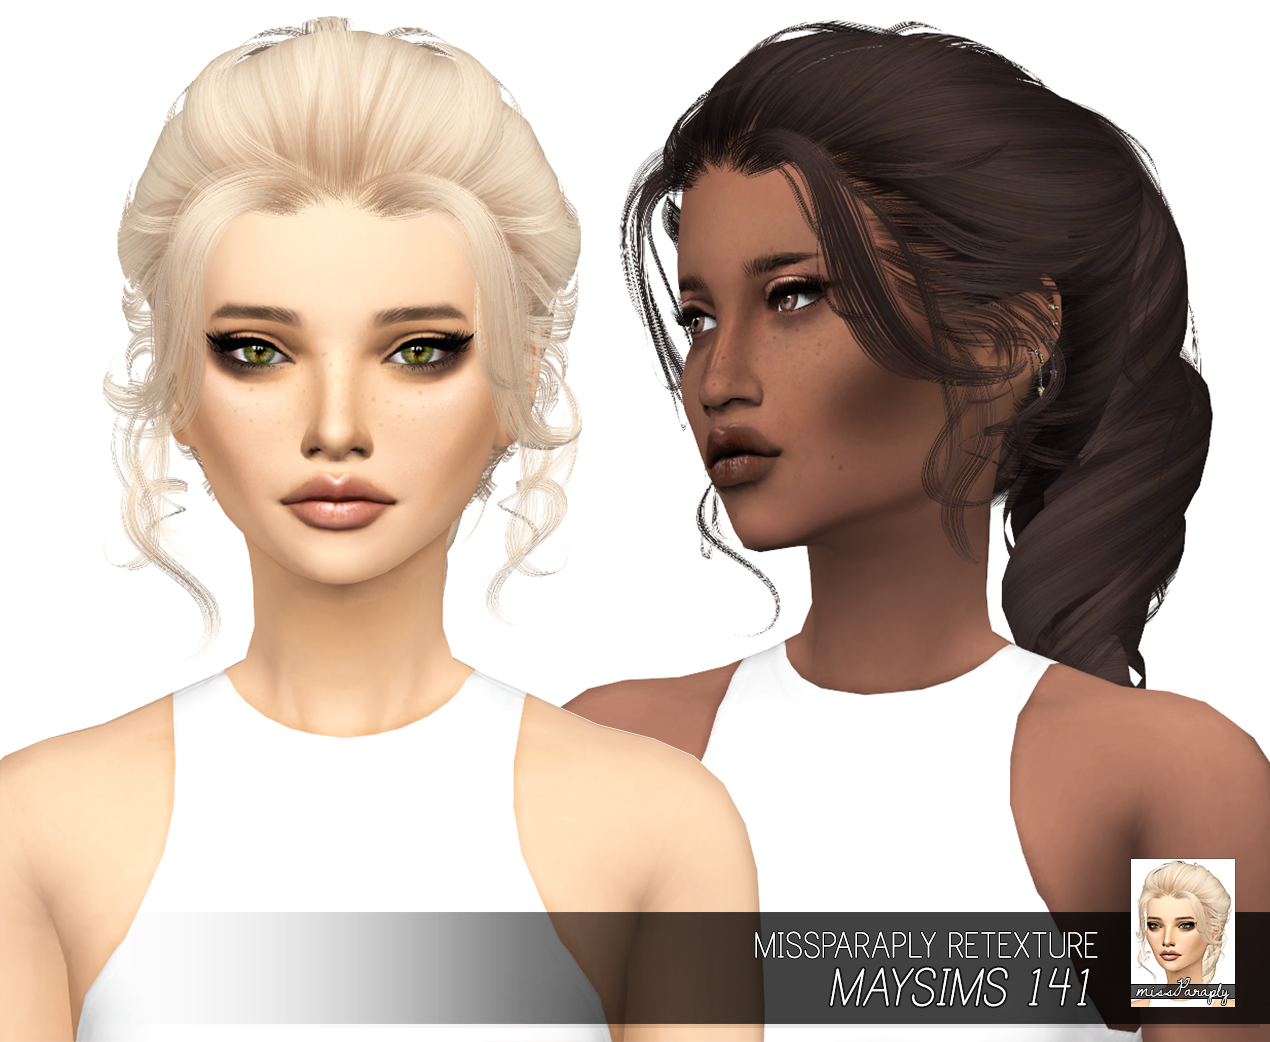 Sims 4 Hairs Miss Paraply May S 141 Hair Retextured